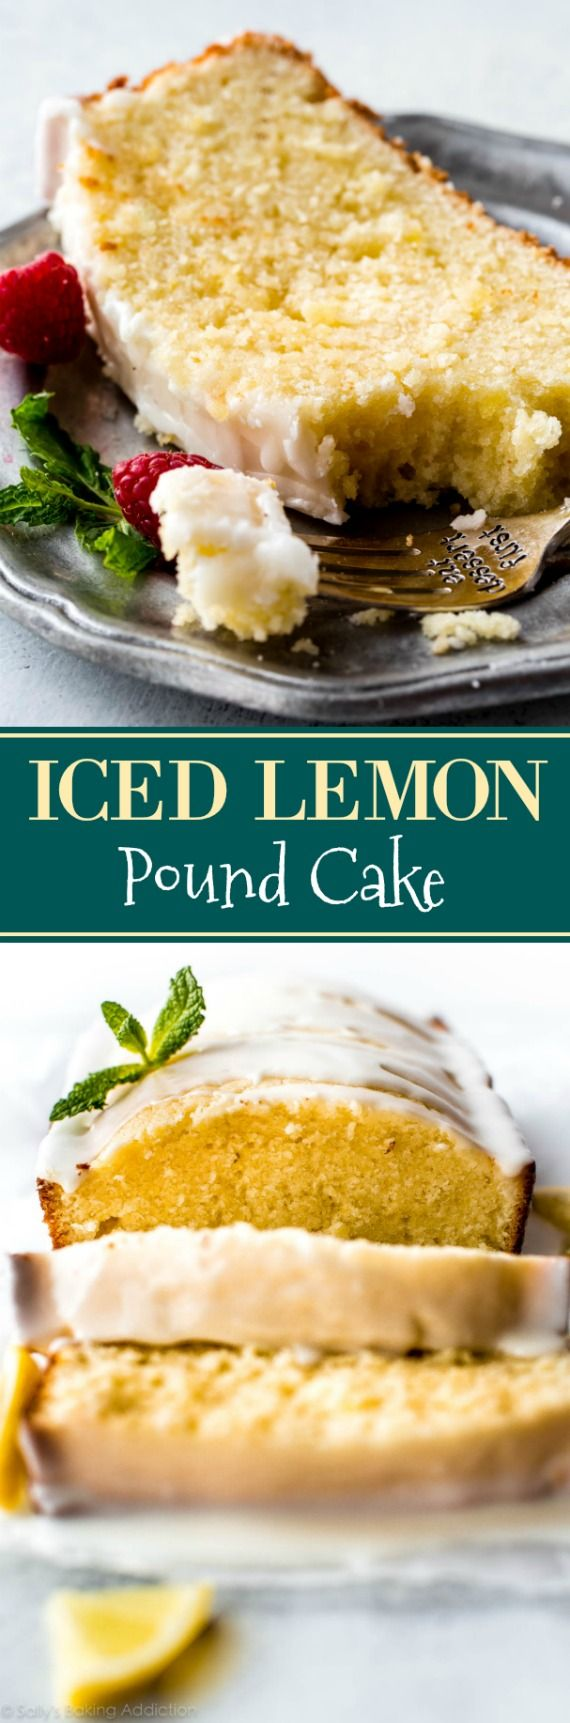 Luscious and moist lemon pound cake with sweet lemon icing. Simple and satisfying, this tastes incredible with fresh berries! Recipe on sallysbakingaddiction.com